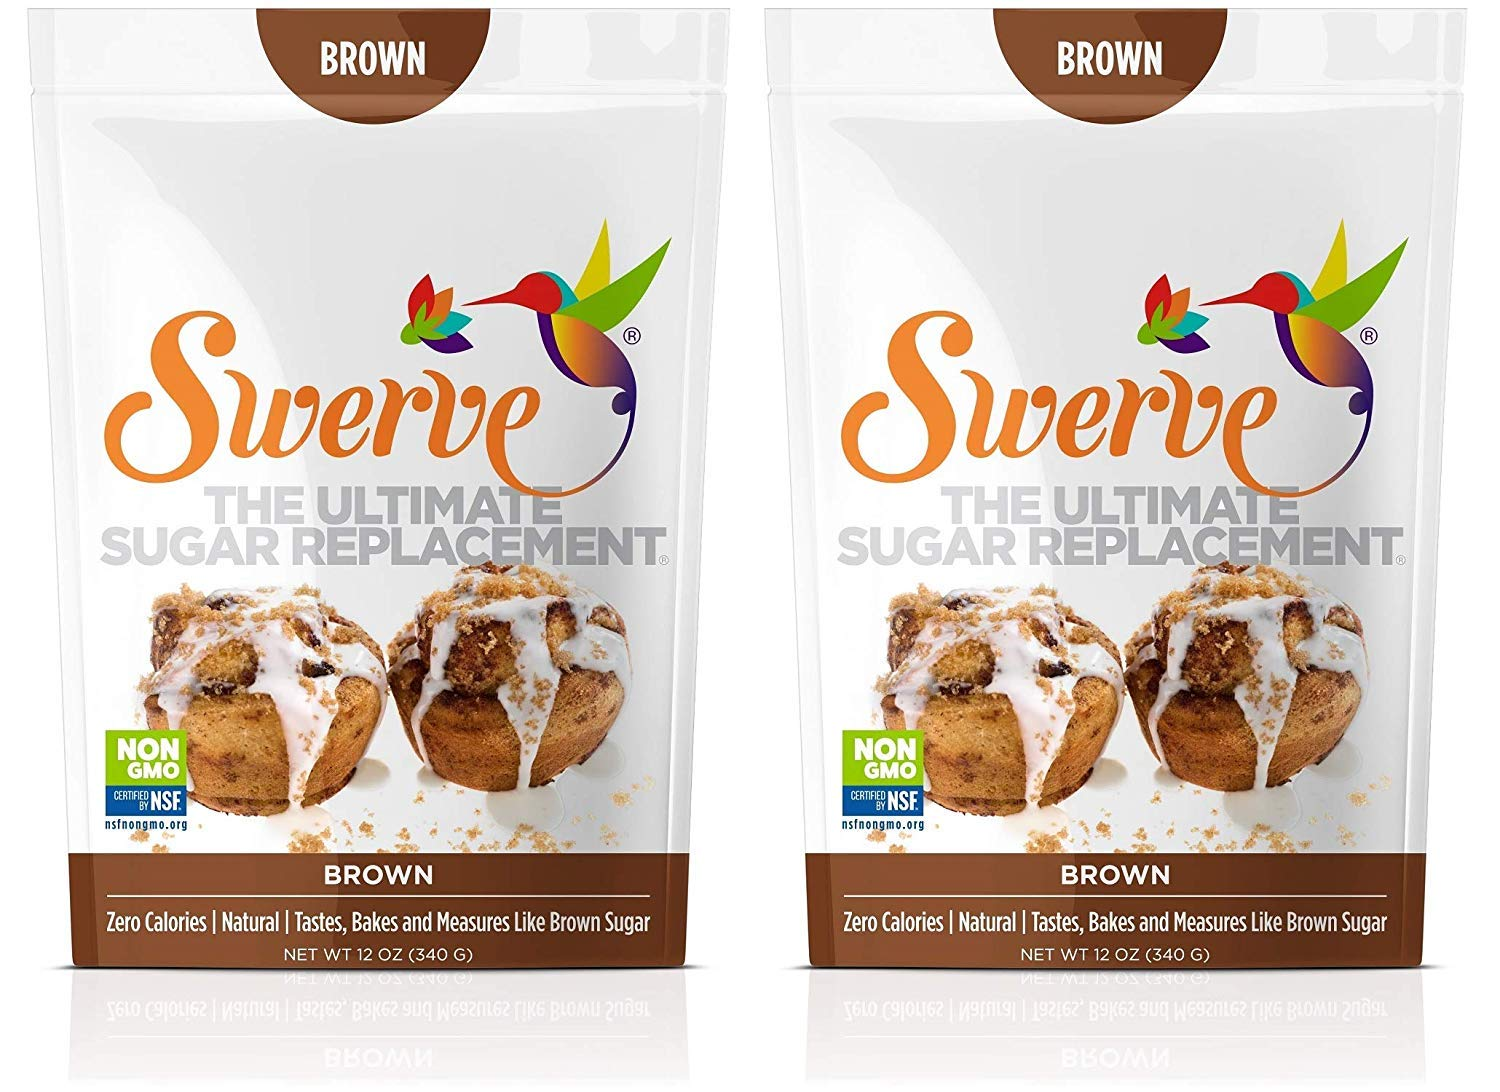 Image of Swerve brown